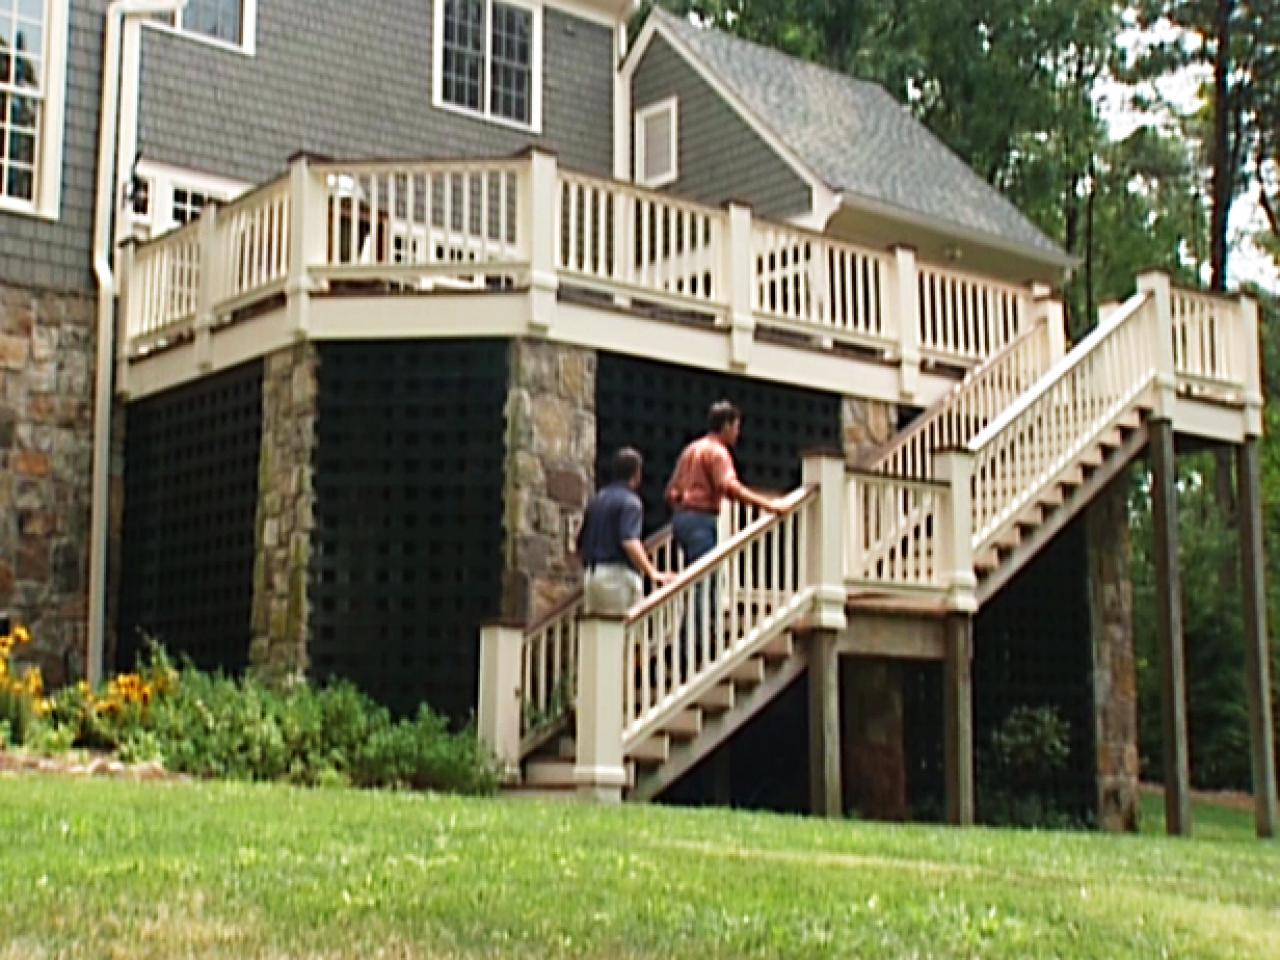 Deck Showcases Lattice Work And Tall Staircase